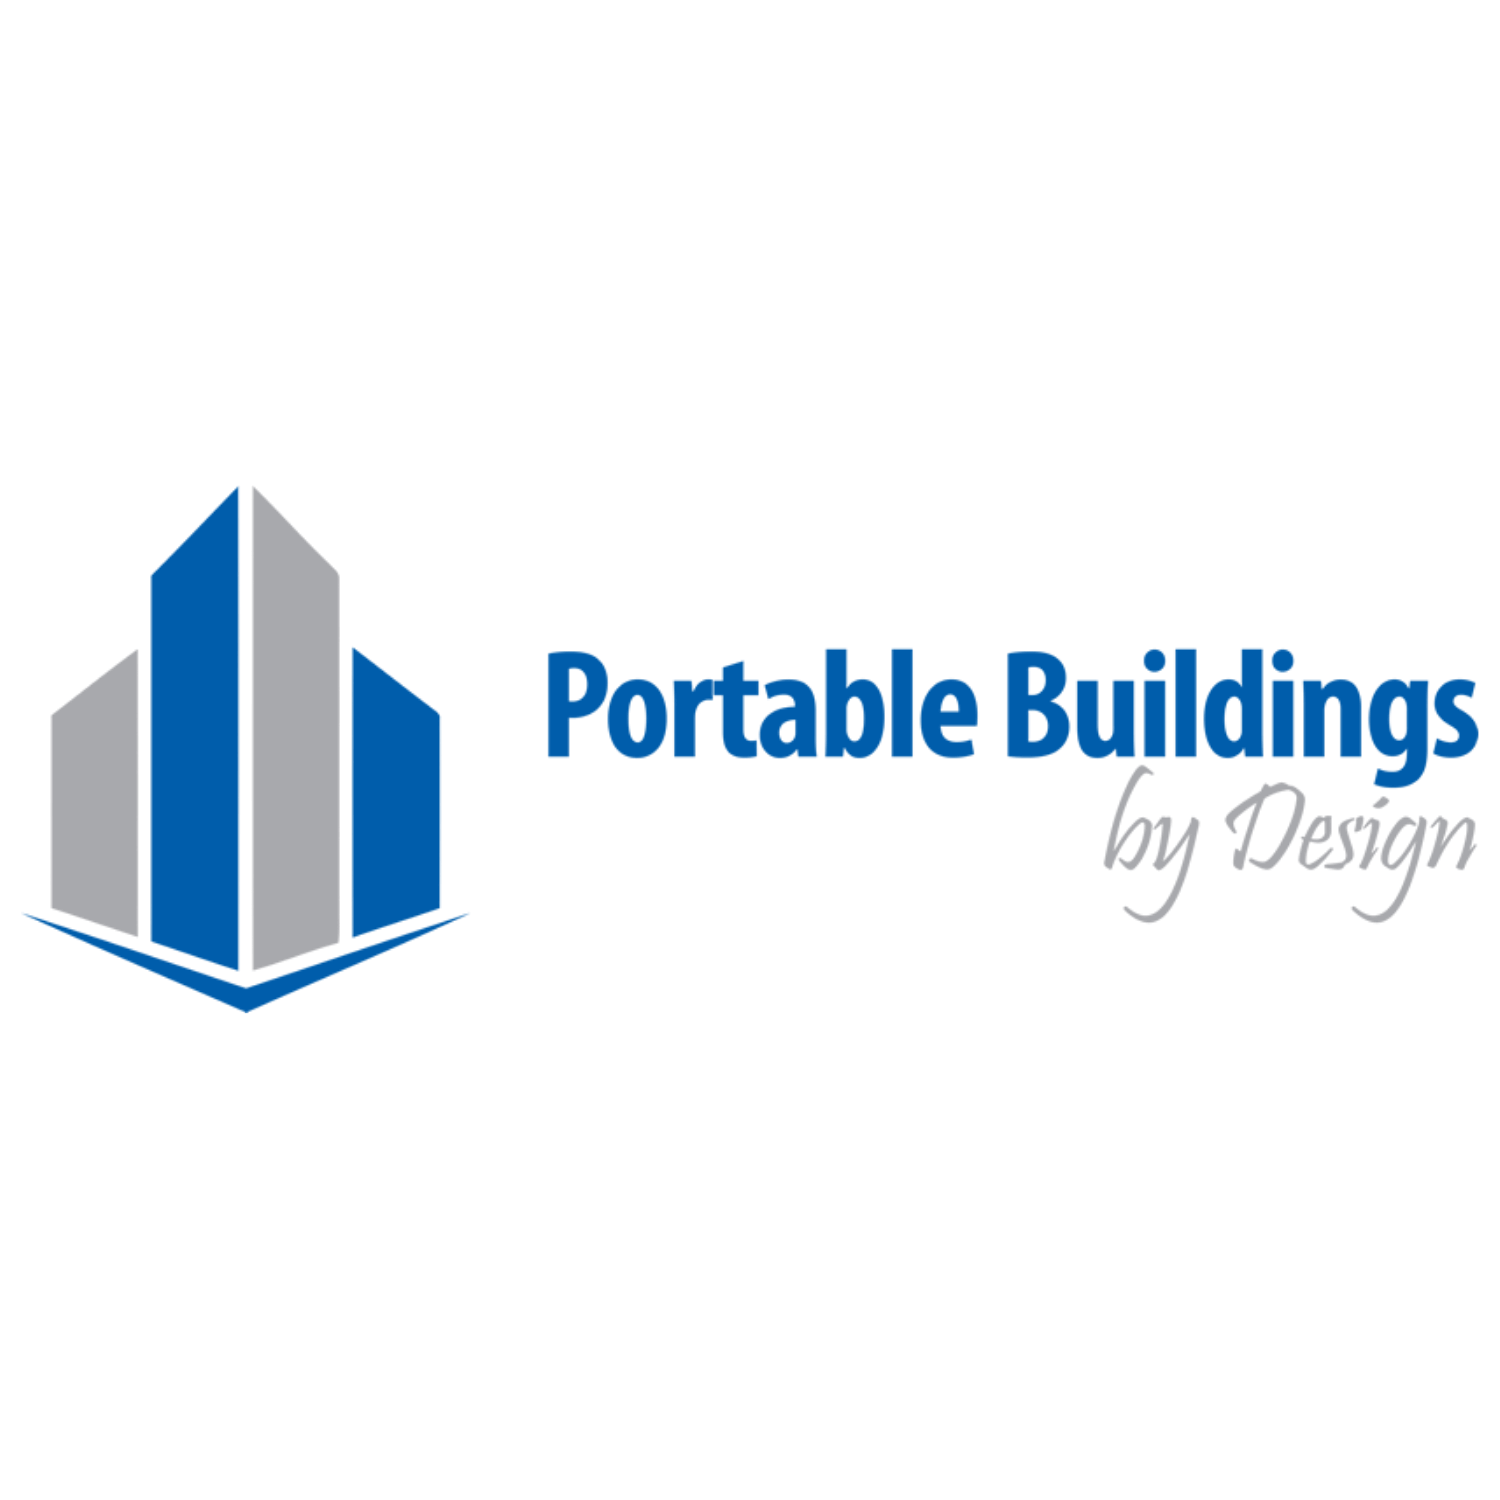 Portable Buildings By Design logo